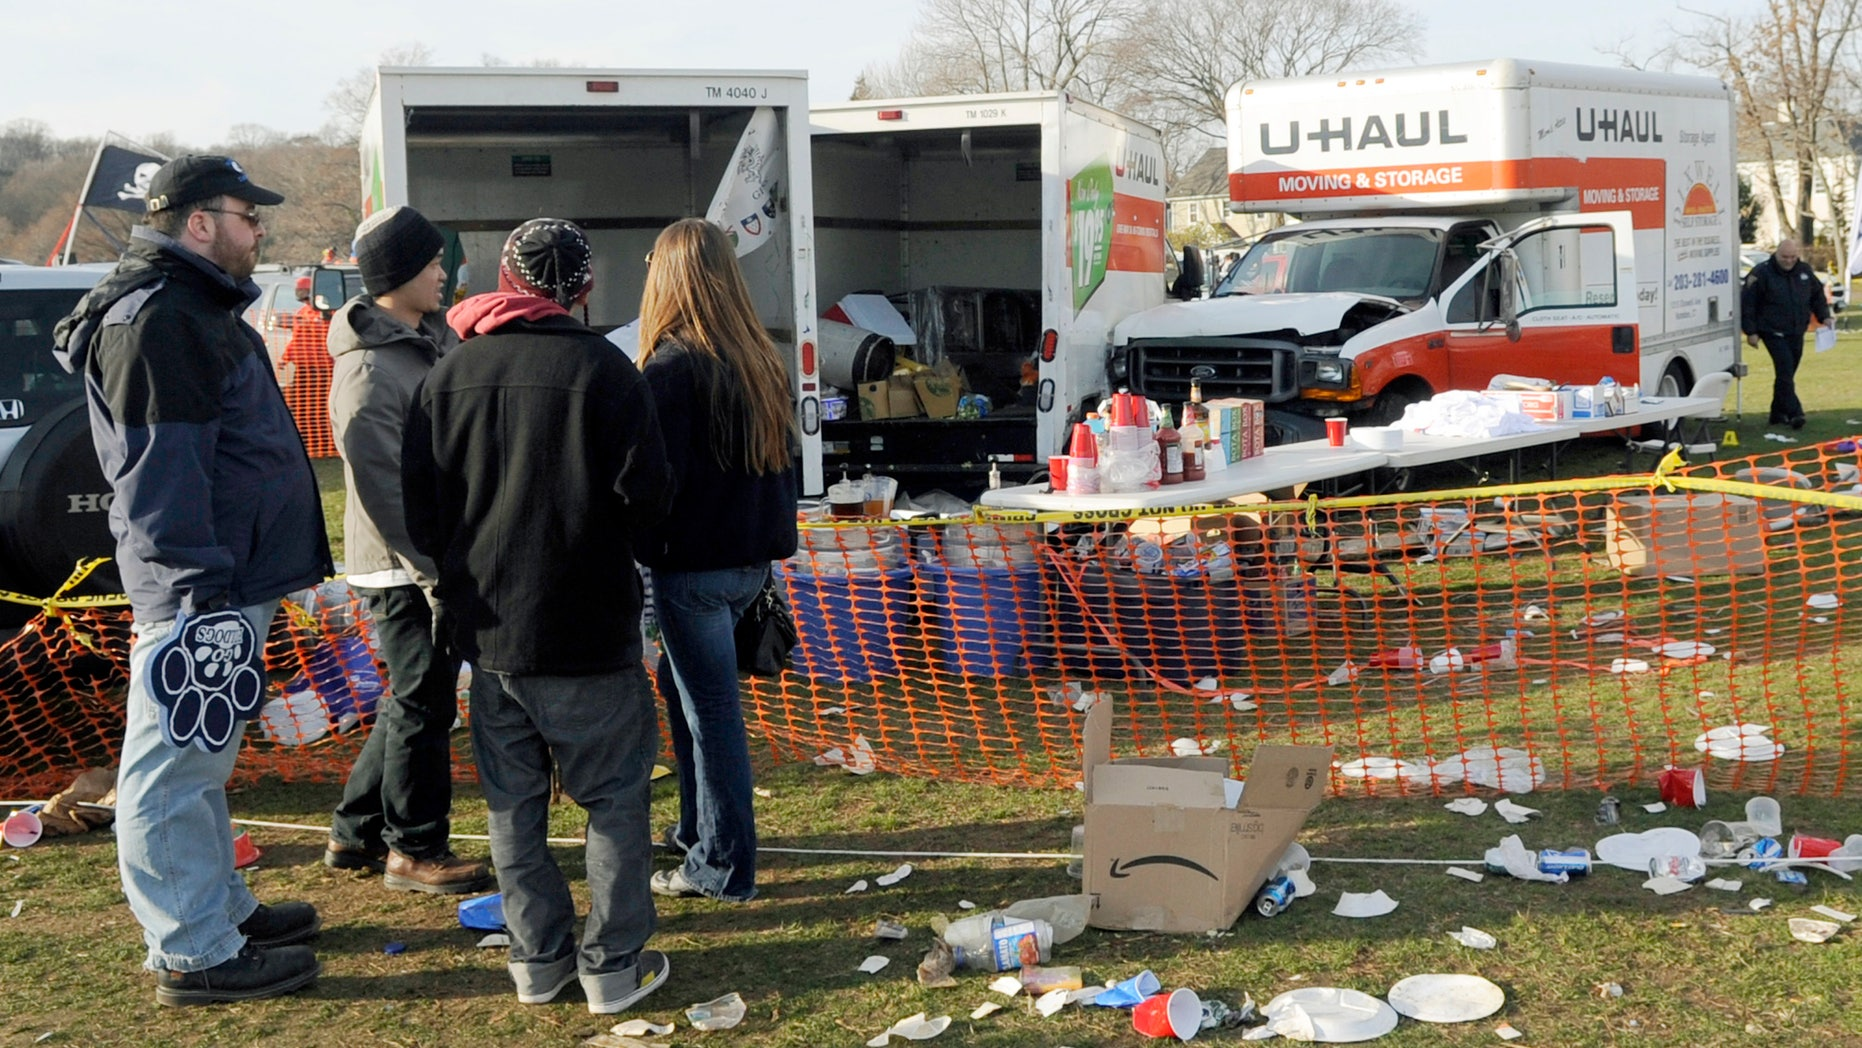 The scene of the deadly tailgating incident in 2011.